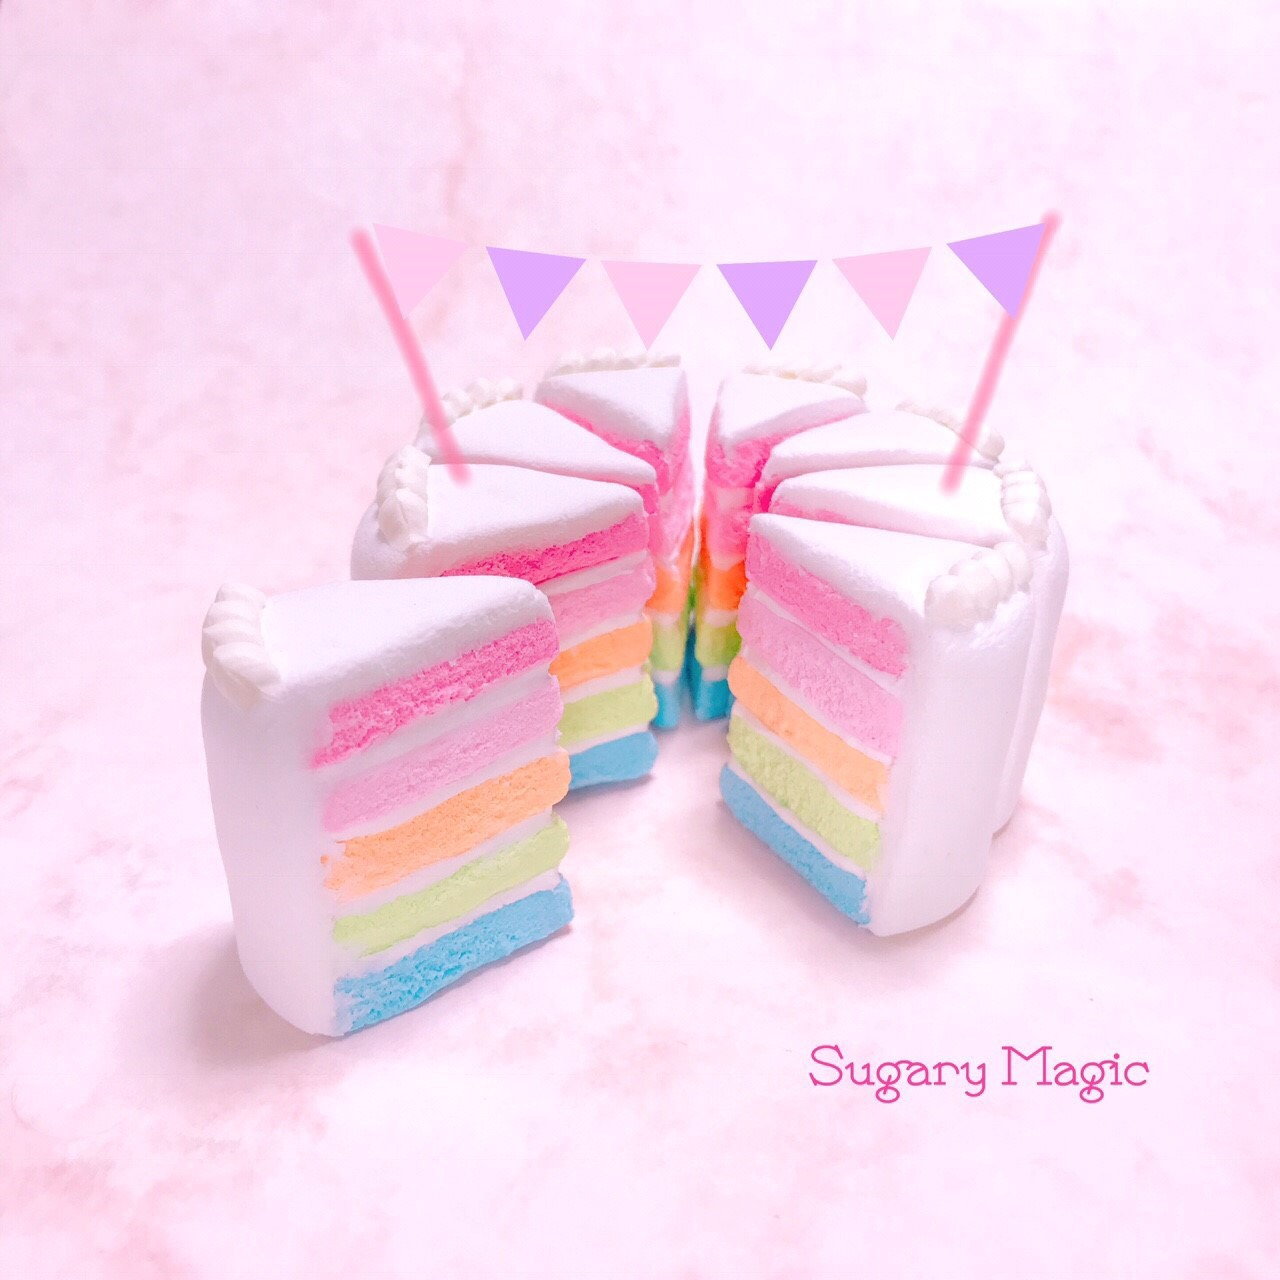 Sugary Magic